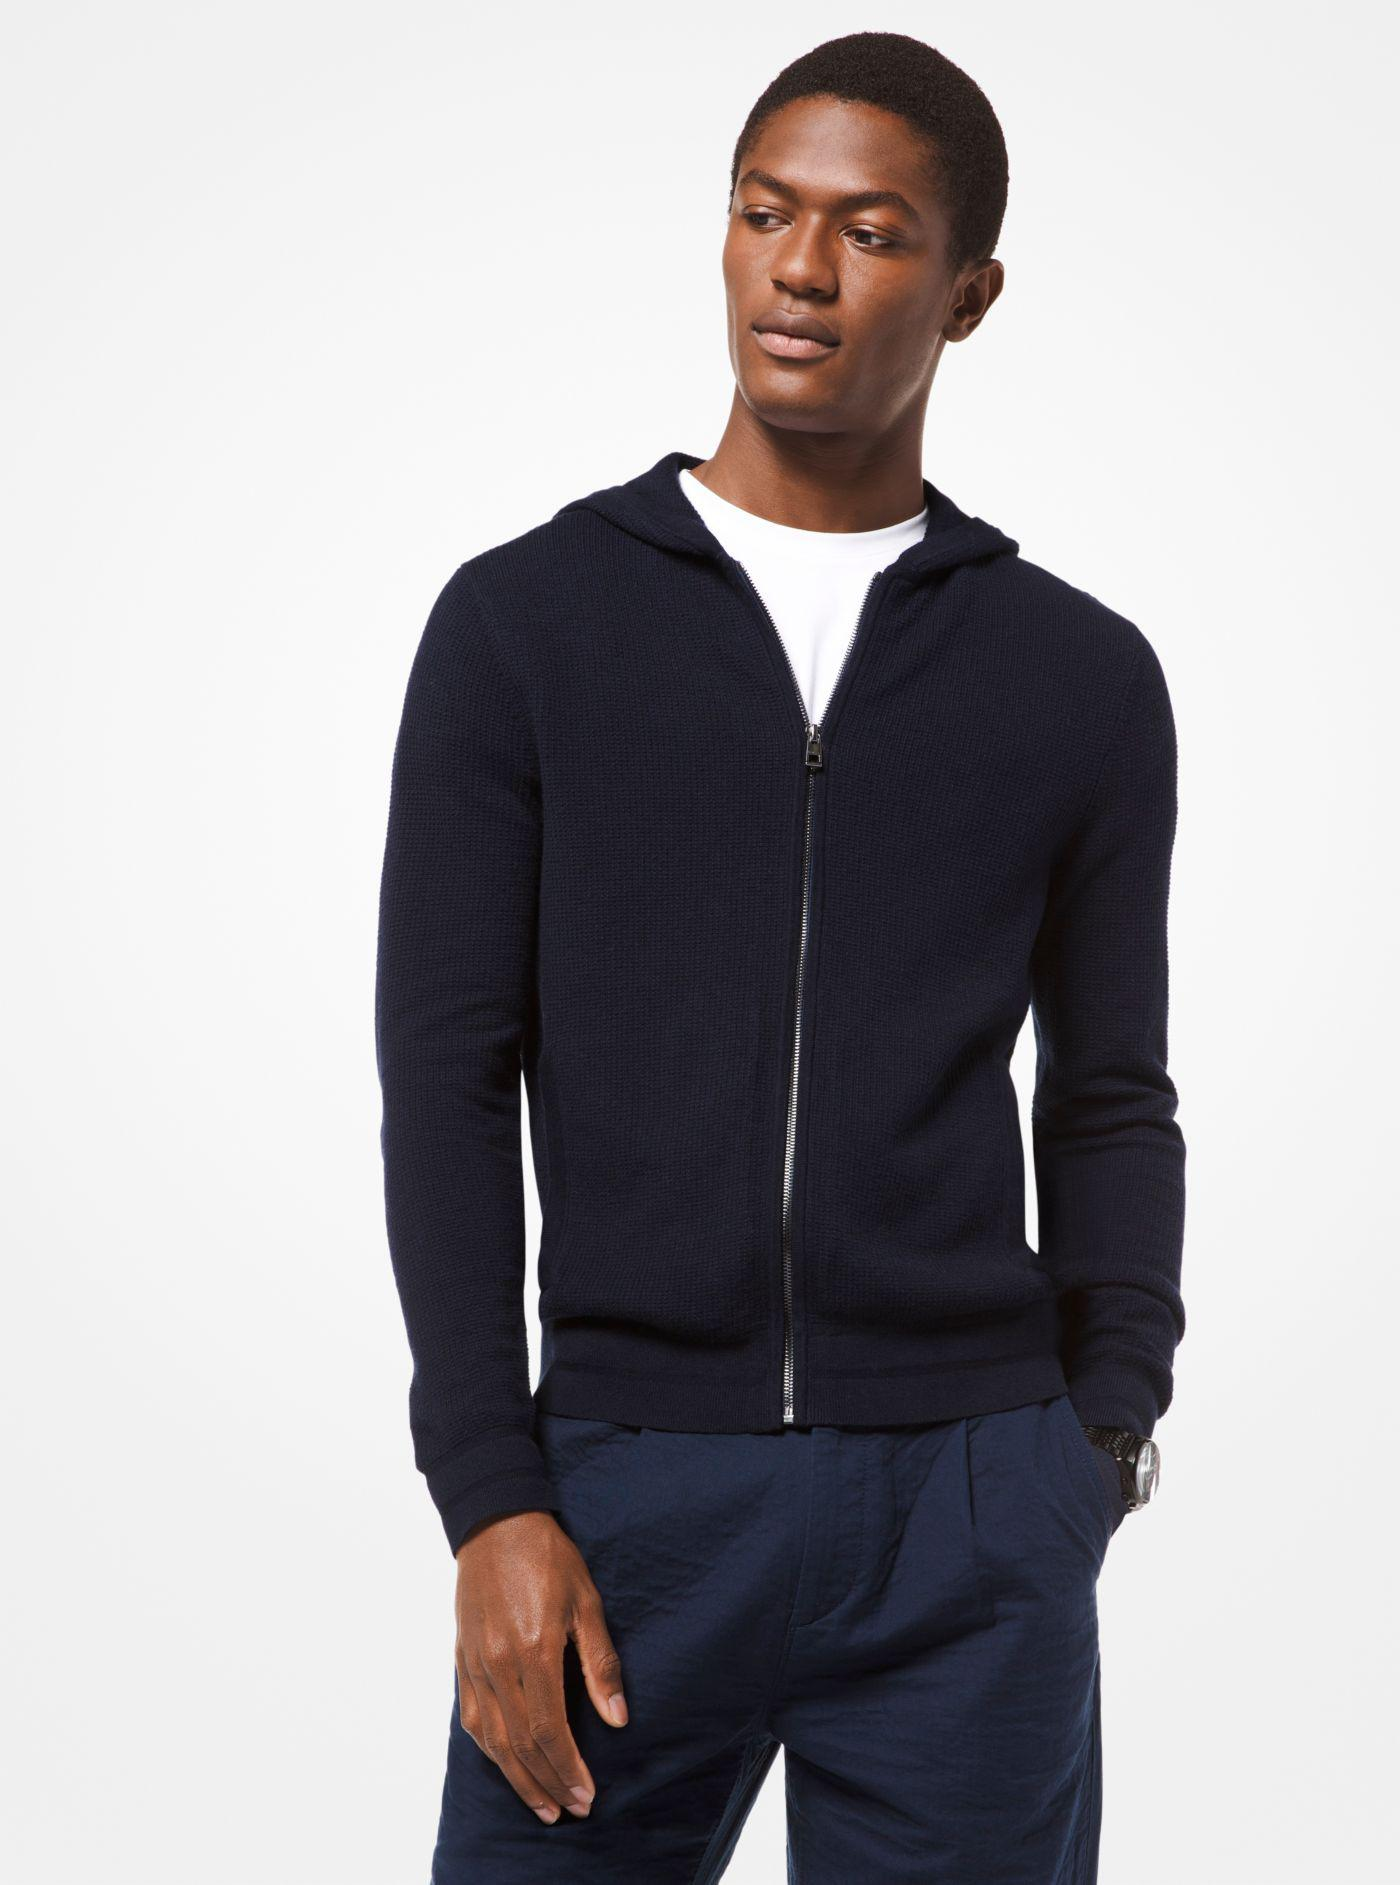 54f0a921bf92e Lyst - Michael Kors Cotton-blend Zip-up Hoodie in Blue for Men